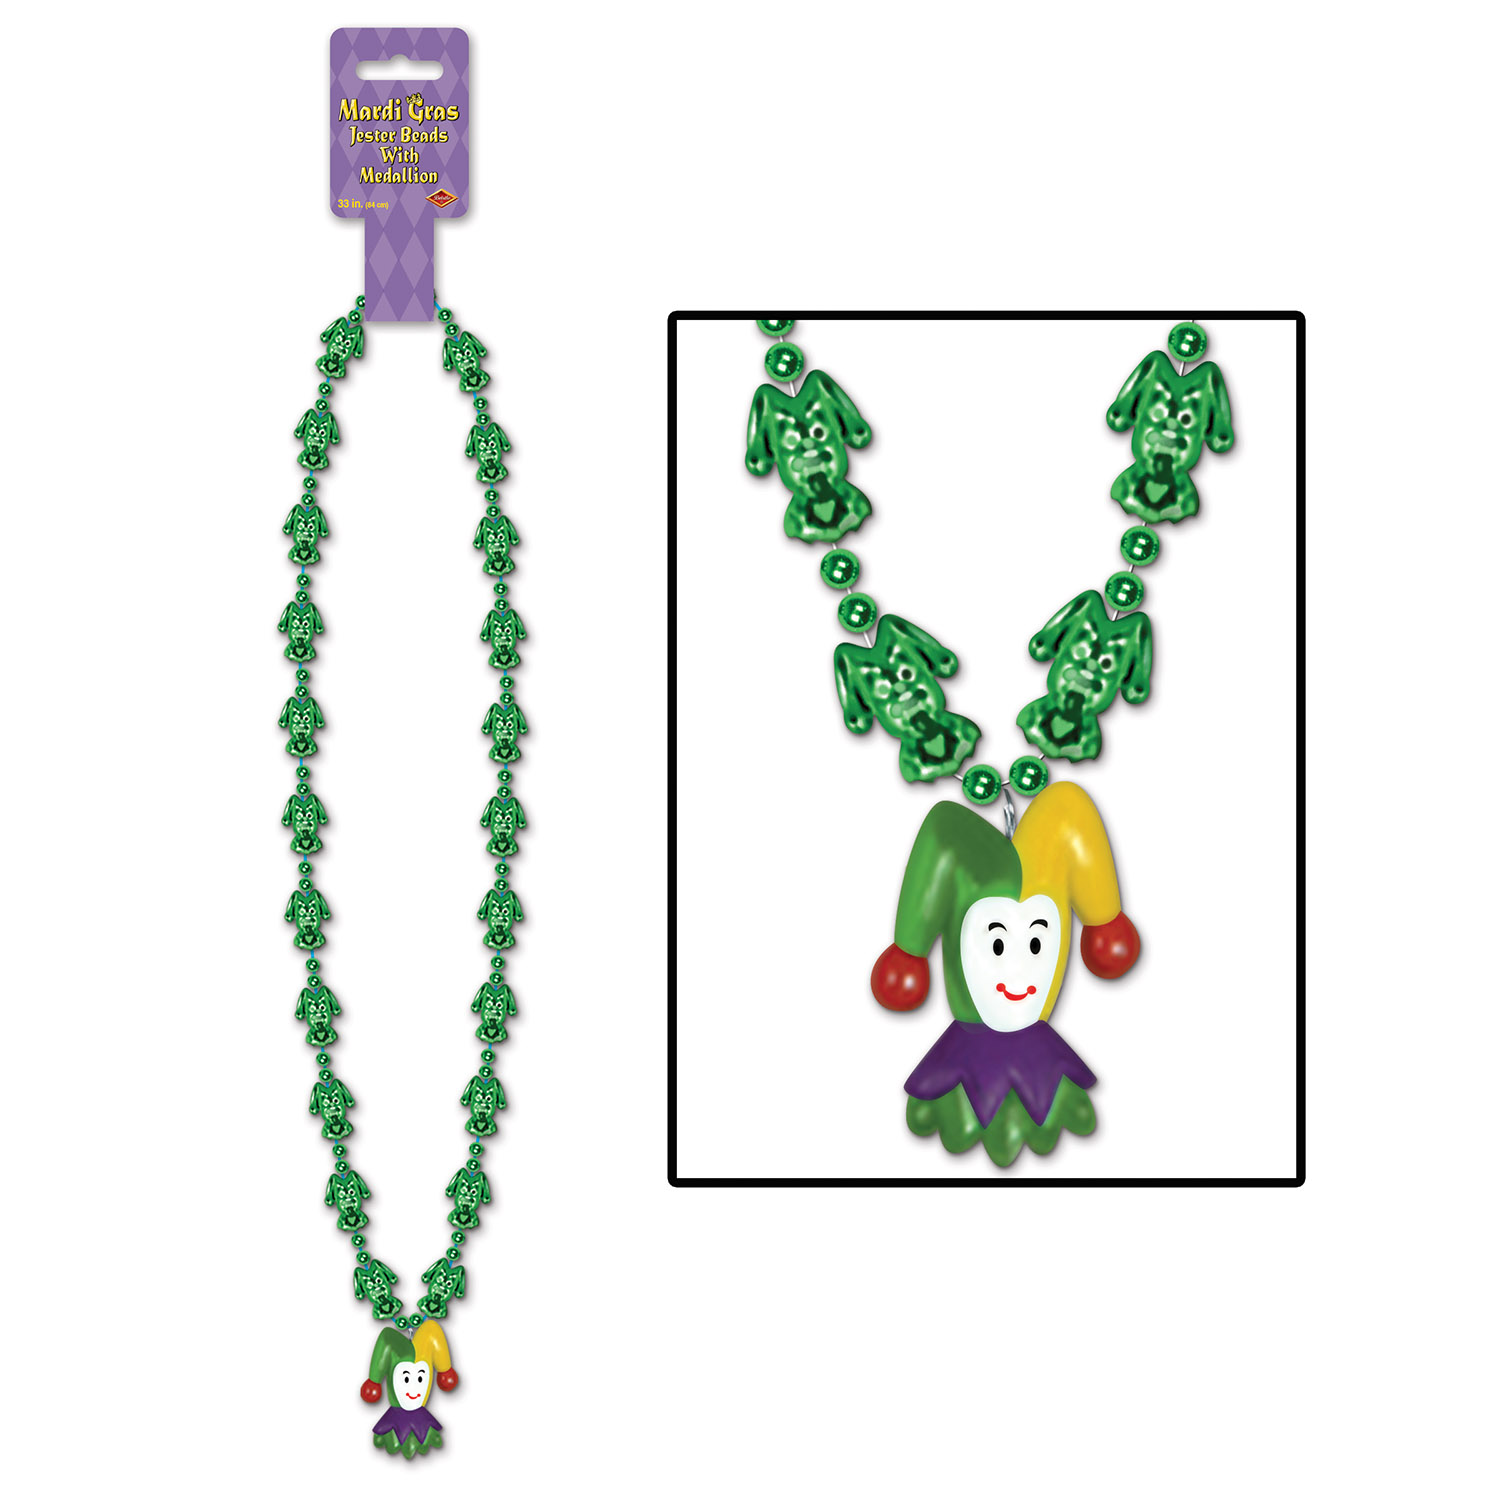 mardi gras bead with a jester medallion that is smiling at the bottom with little green jesters going around the necklace